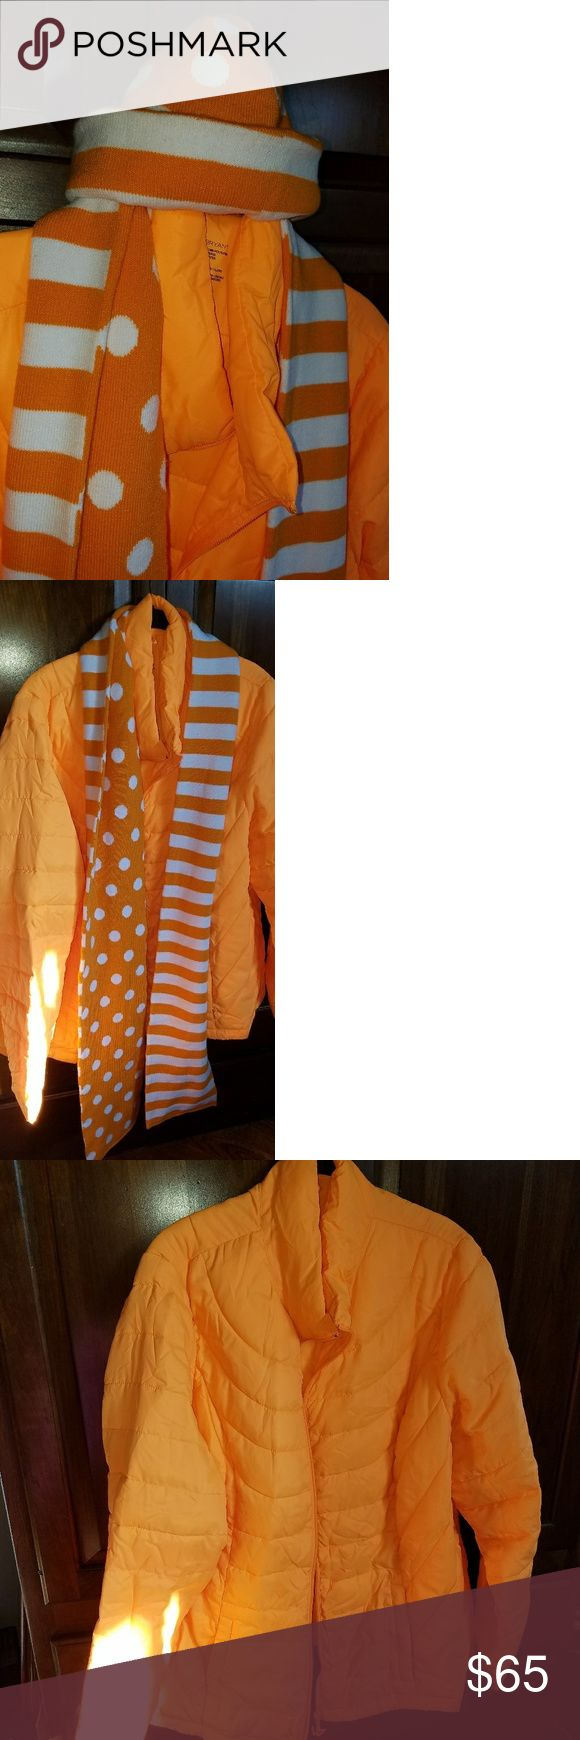 Lane Bryant Packable Jacket w/Scarf & Hat Very cute Orange ski inspired jacket w/ 2 inside pockets, matching reversible hat and scarf Lane Bryant Jackets & Coats Puffers